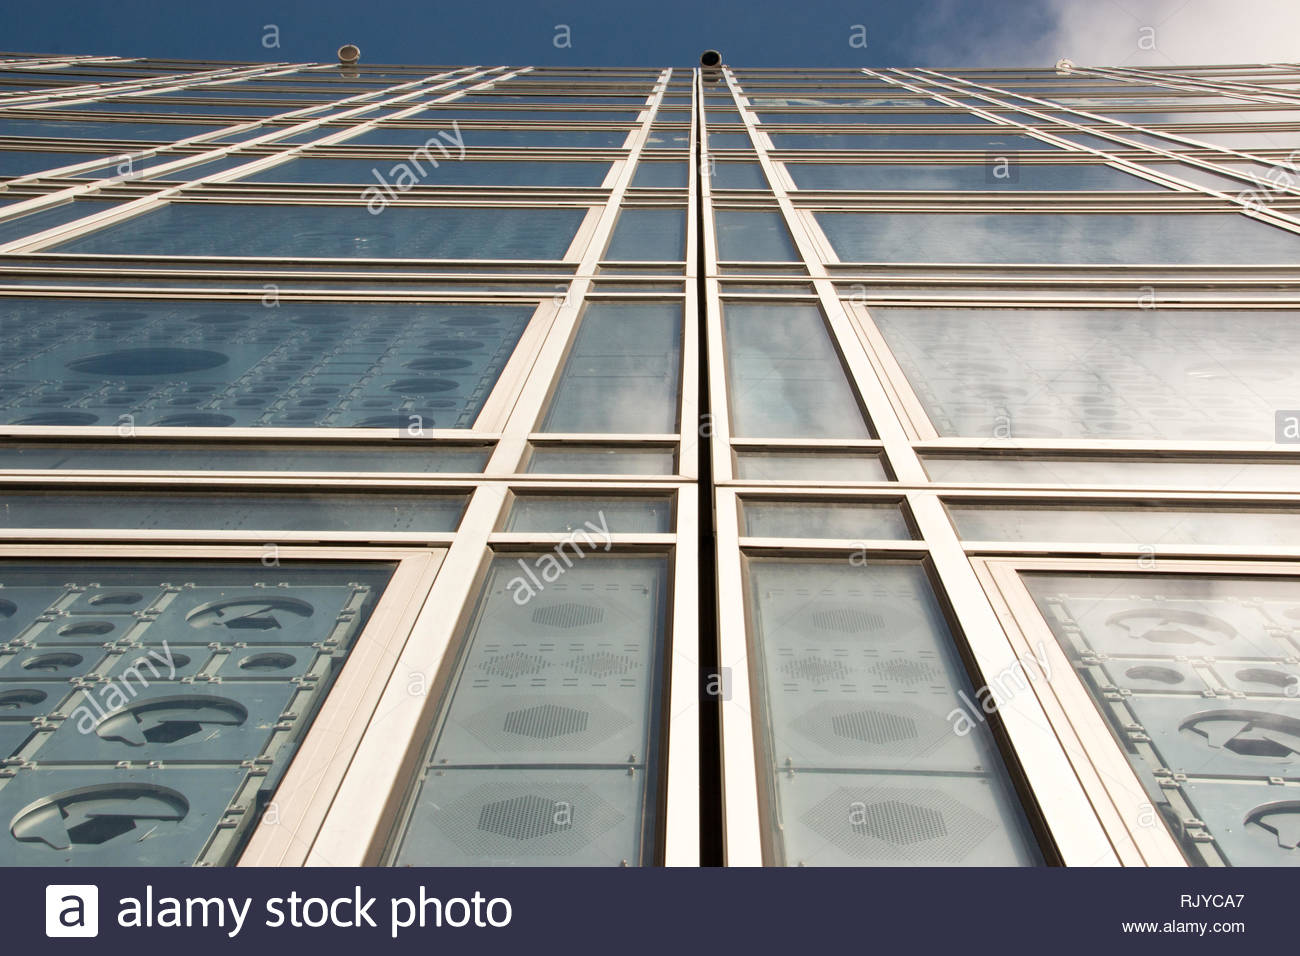 Paris (France), February 7, 2019. View of the architecture of the Institute of the Arab World, in Paris. - Stock Image